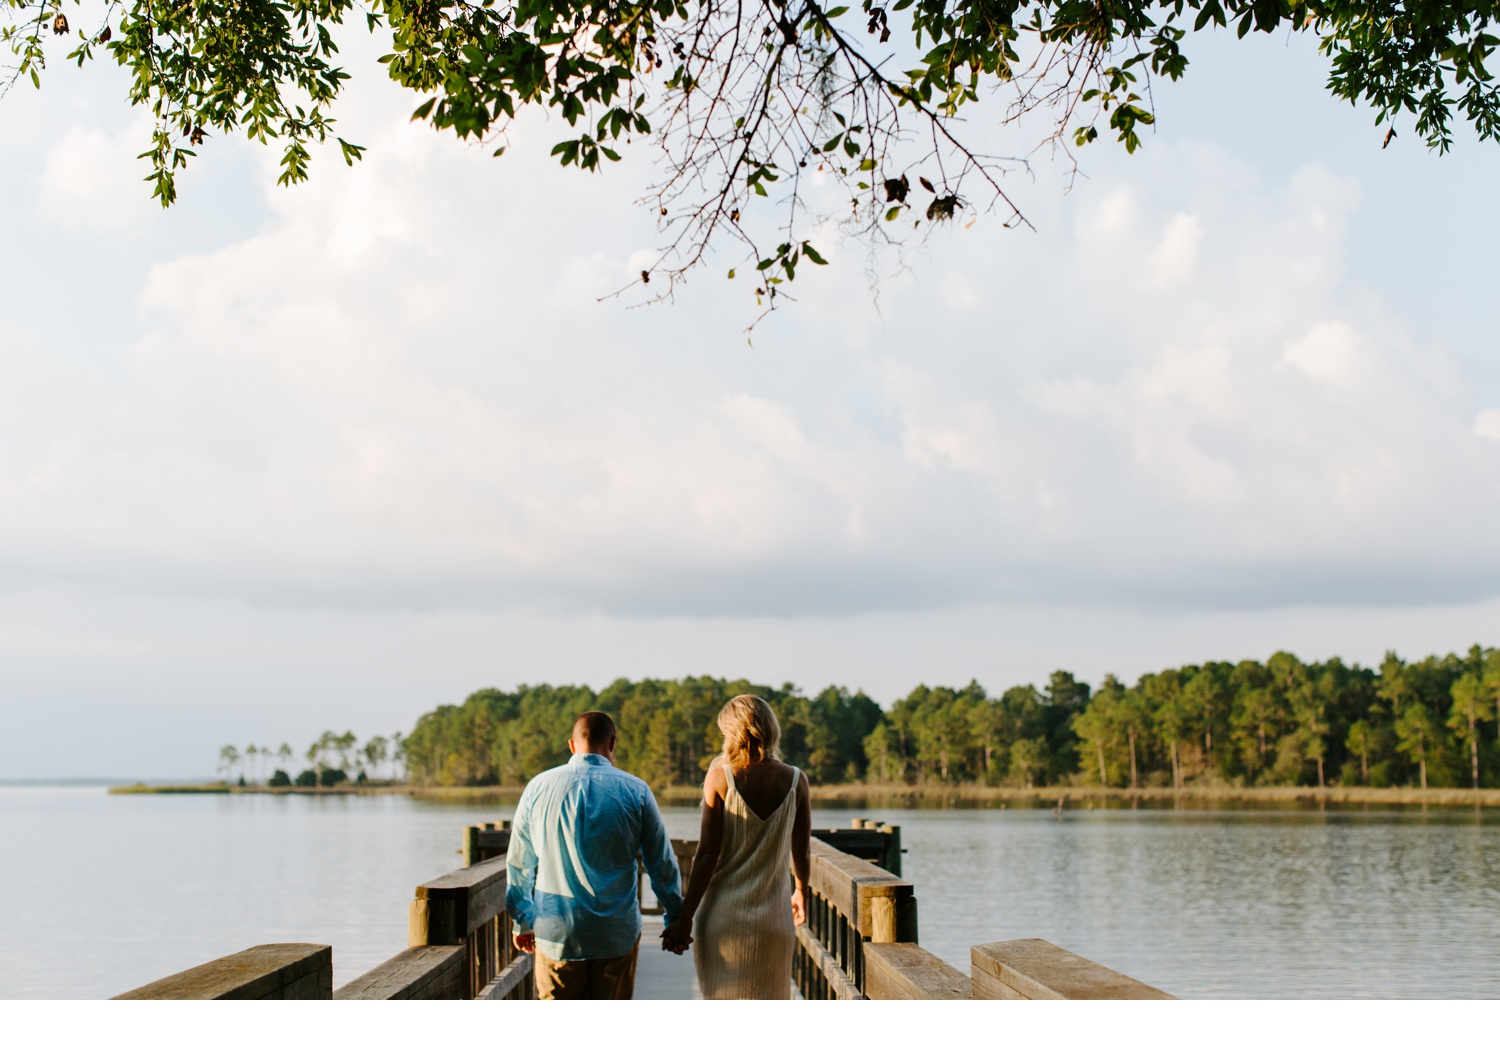 eden-gardens-state-park-engagement-session-stacie-and-jacob-8.jpg